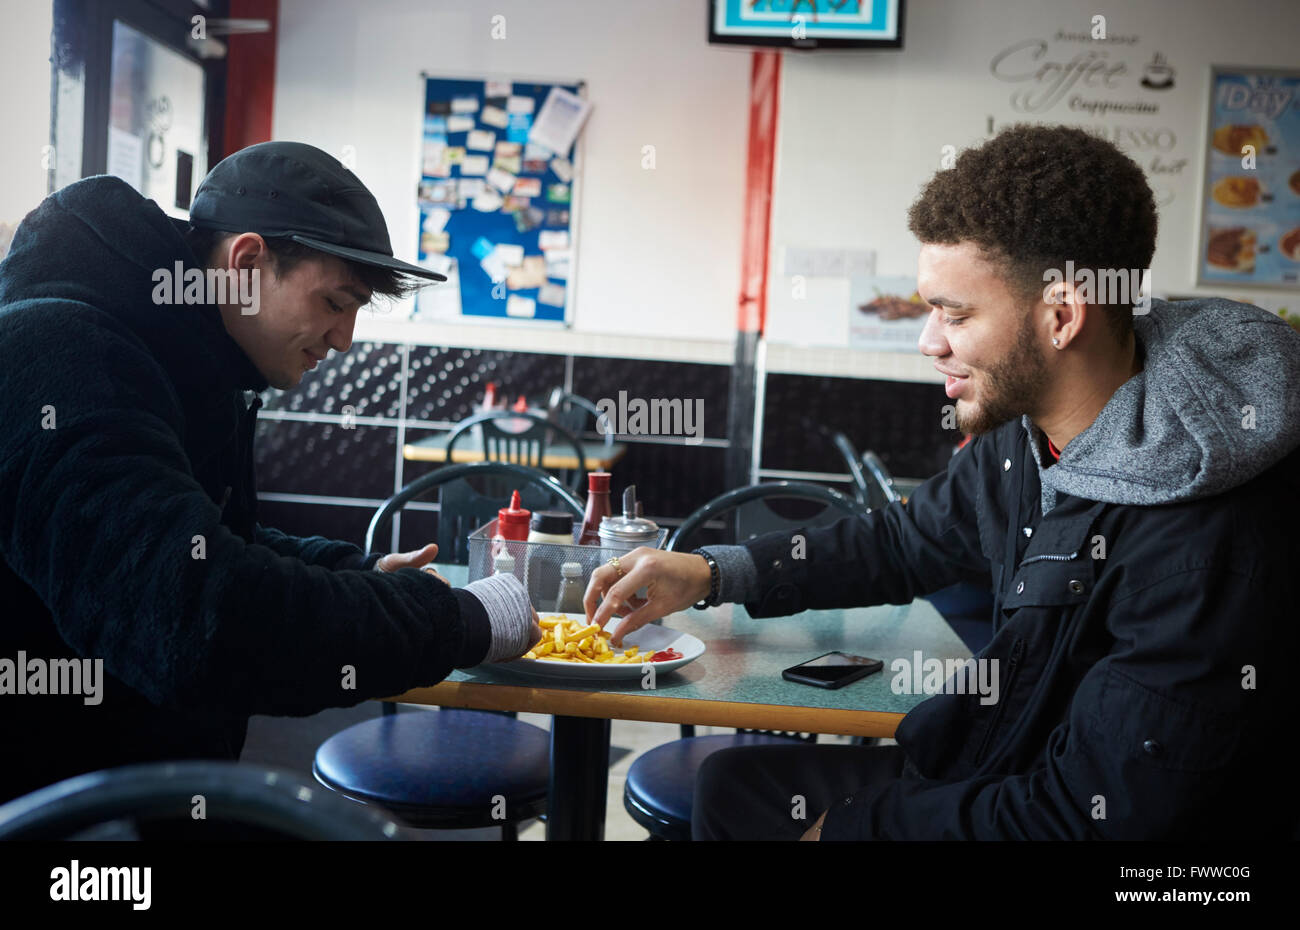 Two Male Students Eating Meal In Café Stock Photo